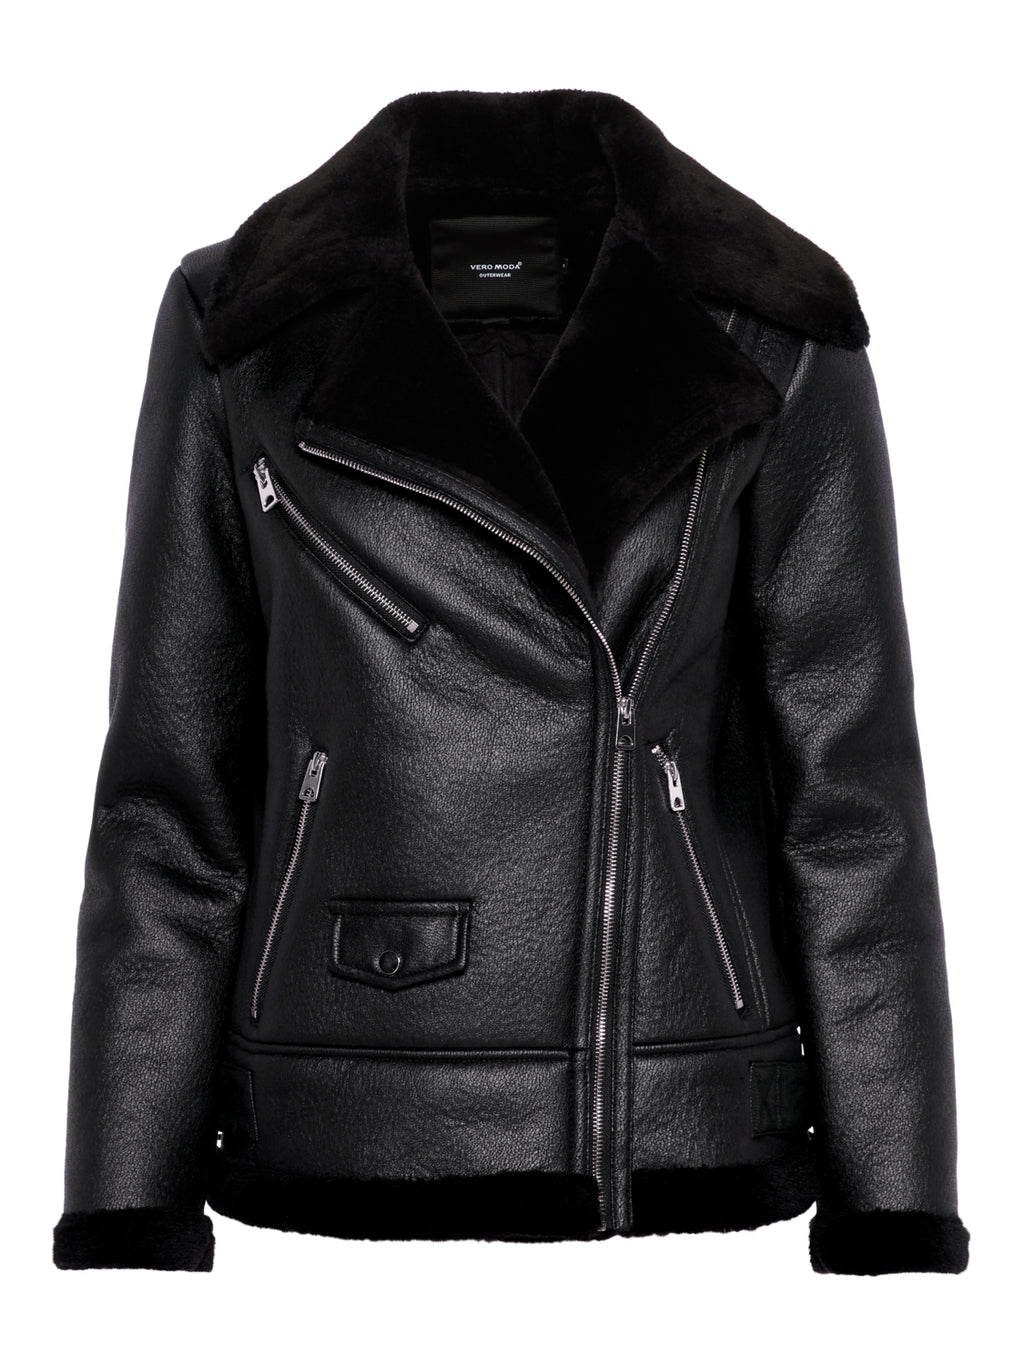 Black Faux Shearling Aviator Jacket - Coveted Style